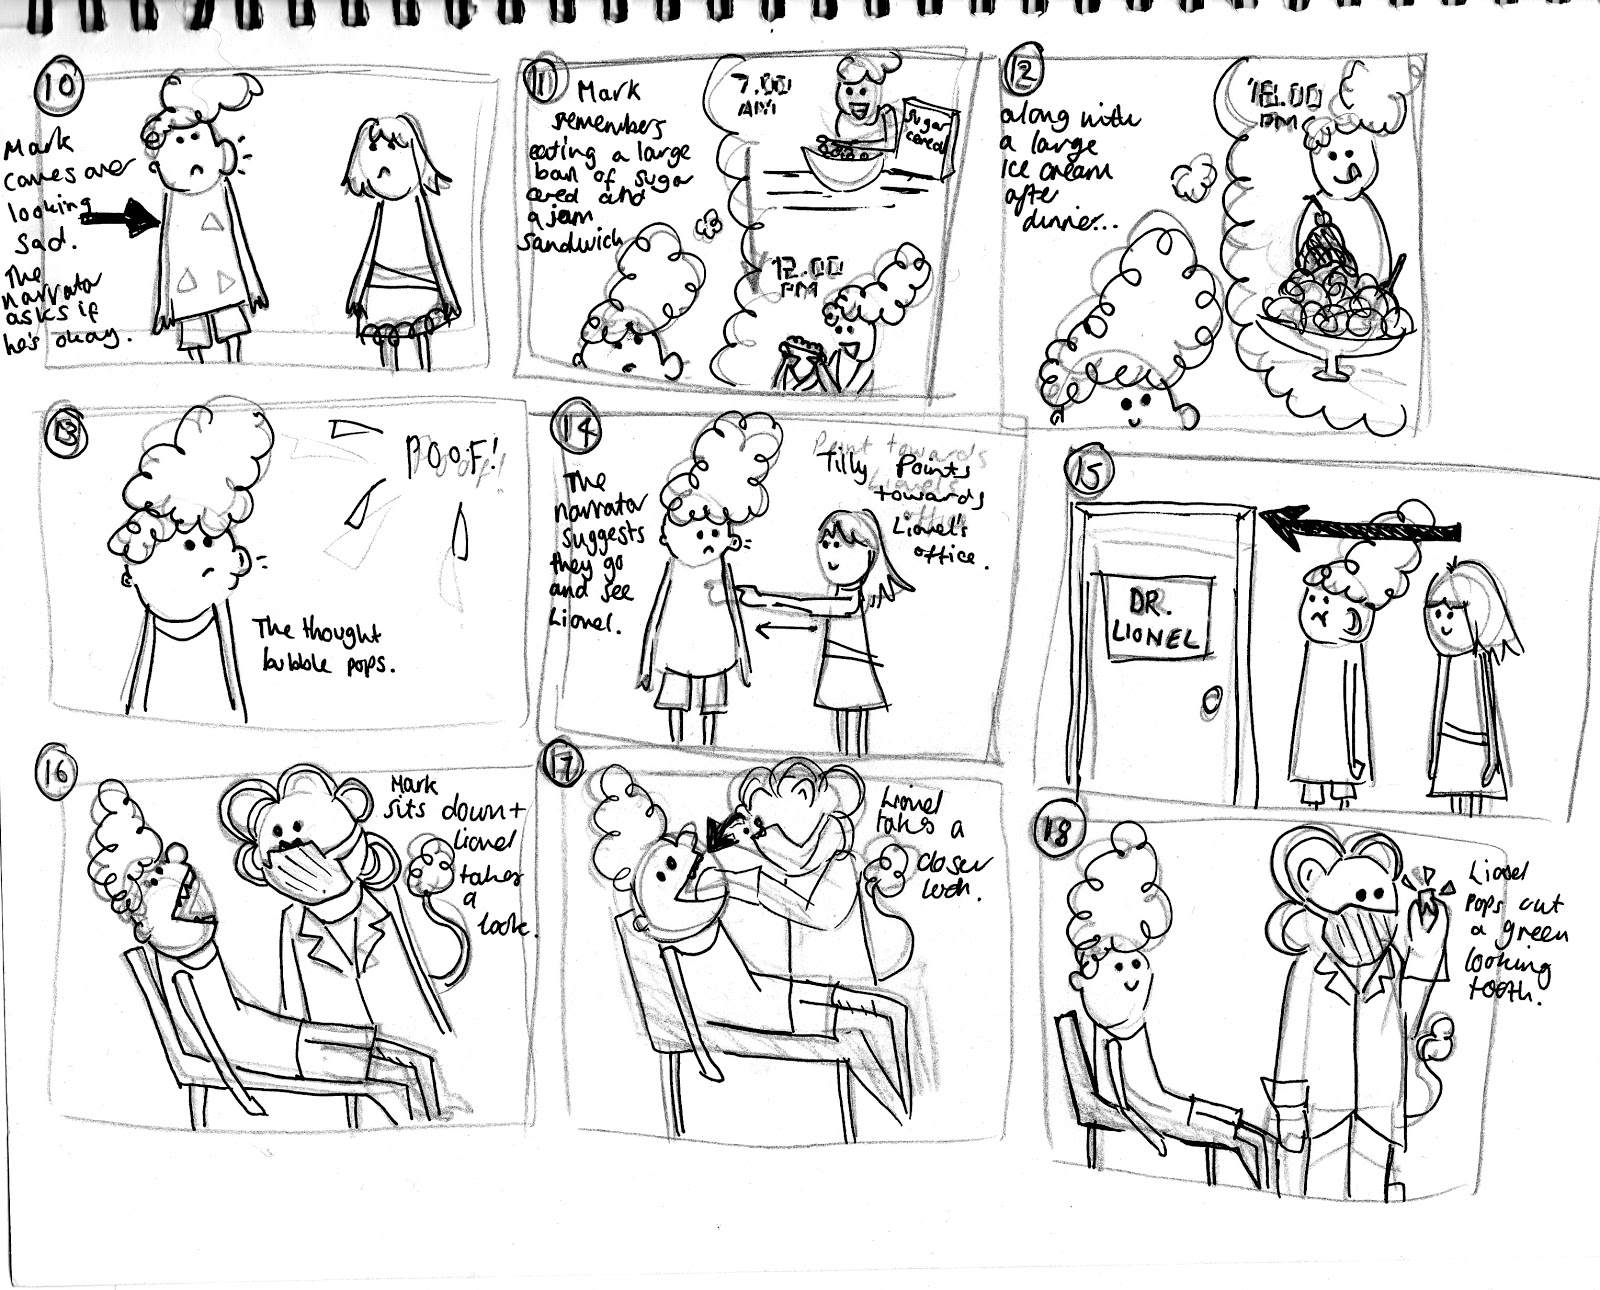 Laura's Animations: Draft Storyboard Sequence and story.